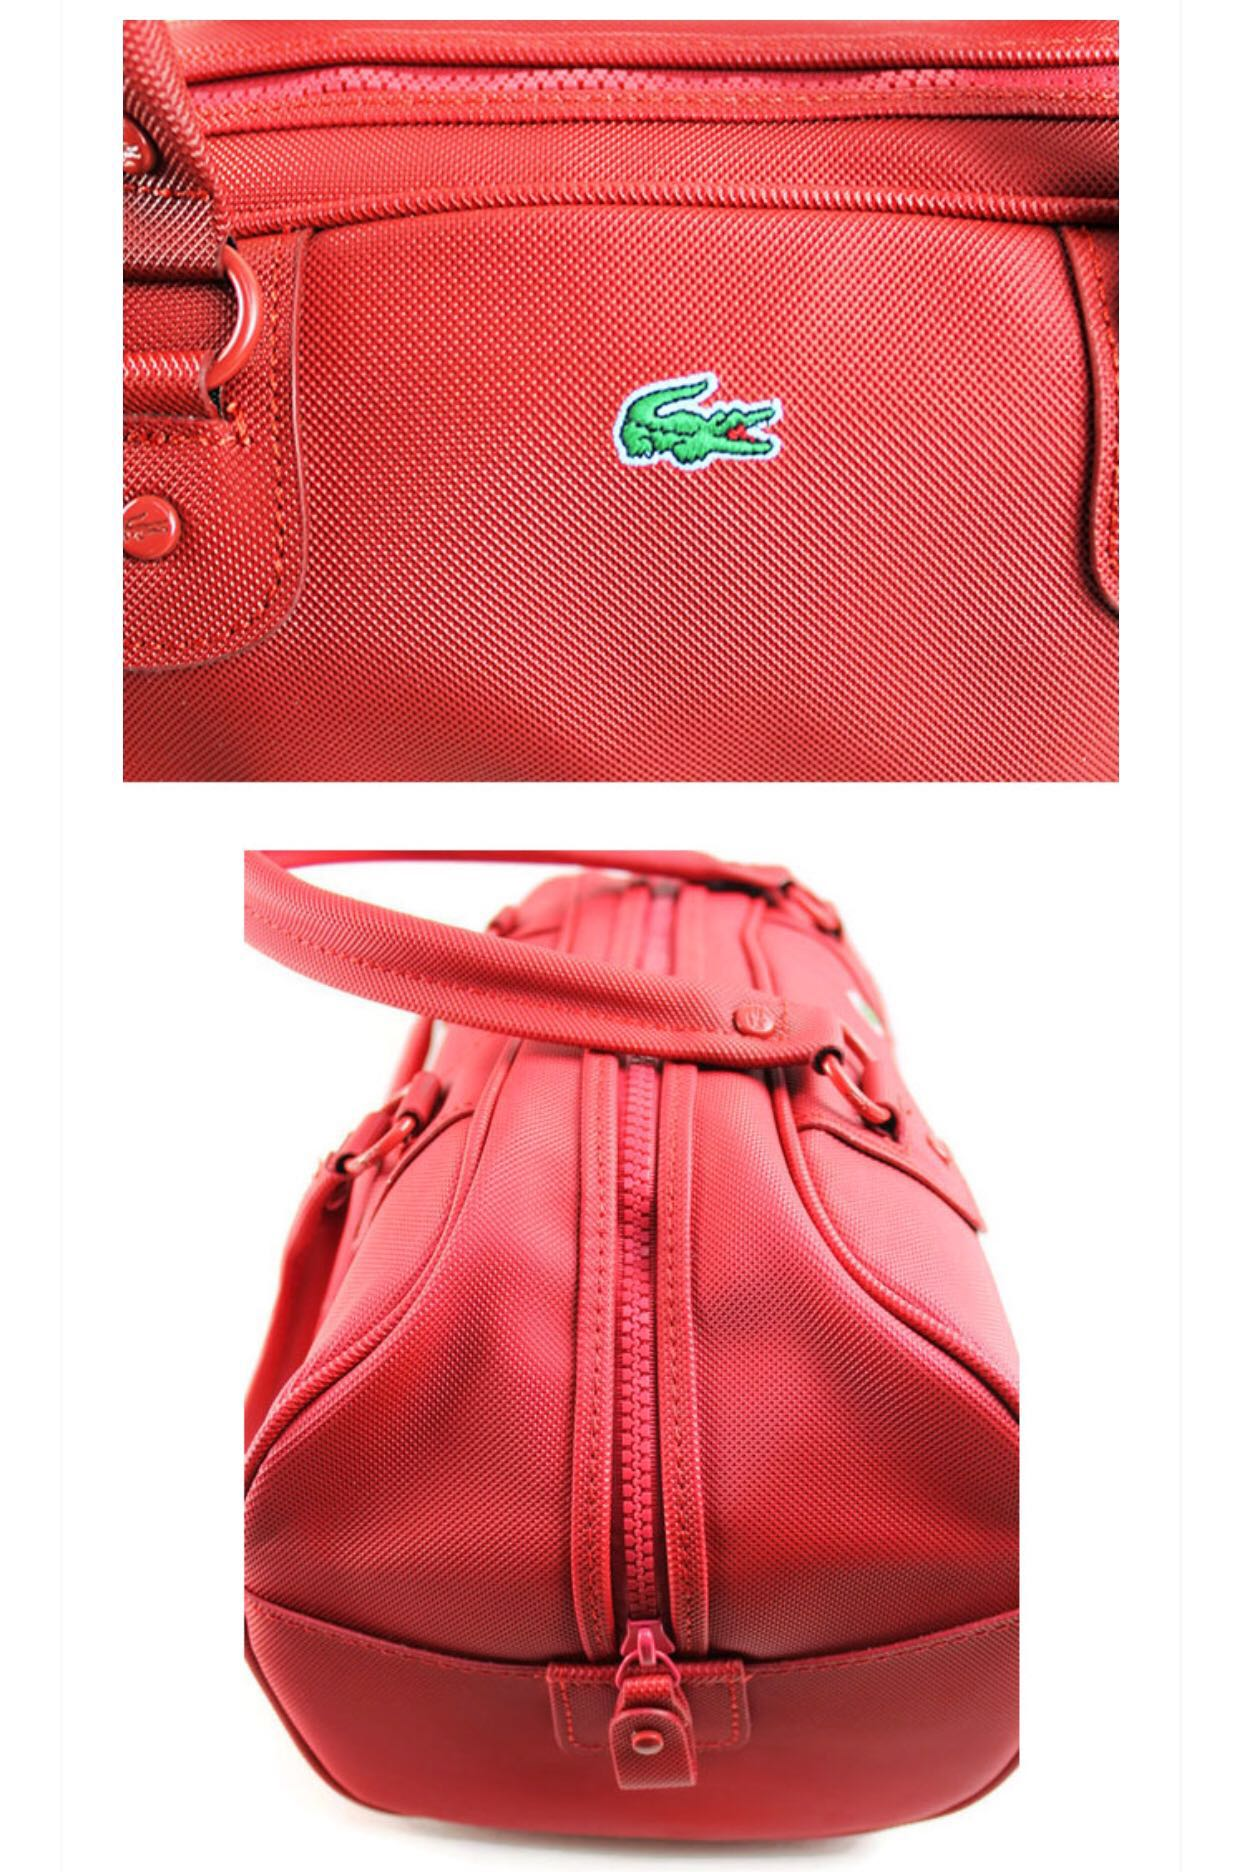 0a339ab59 🛍CLEARANCE SALE! 💯% LACOSTE BOWLING BAG (RED) READY STOCK   LAST 1 ...